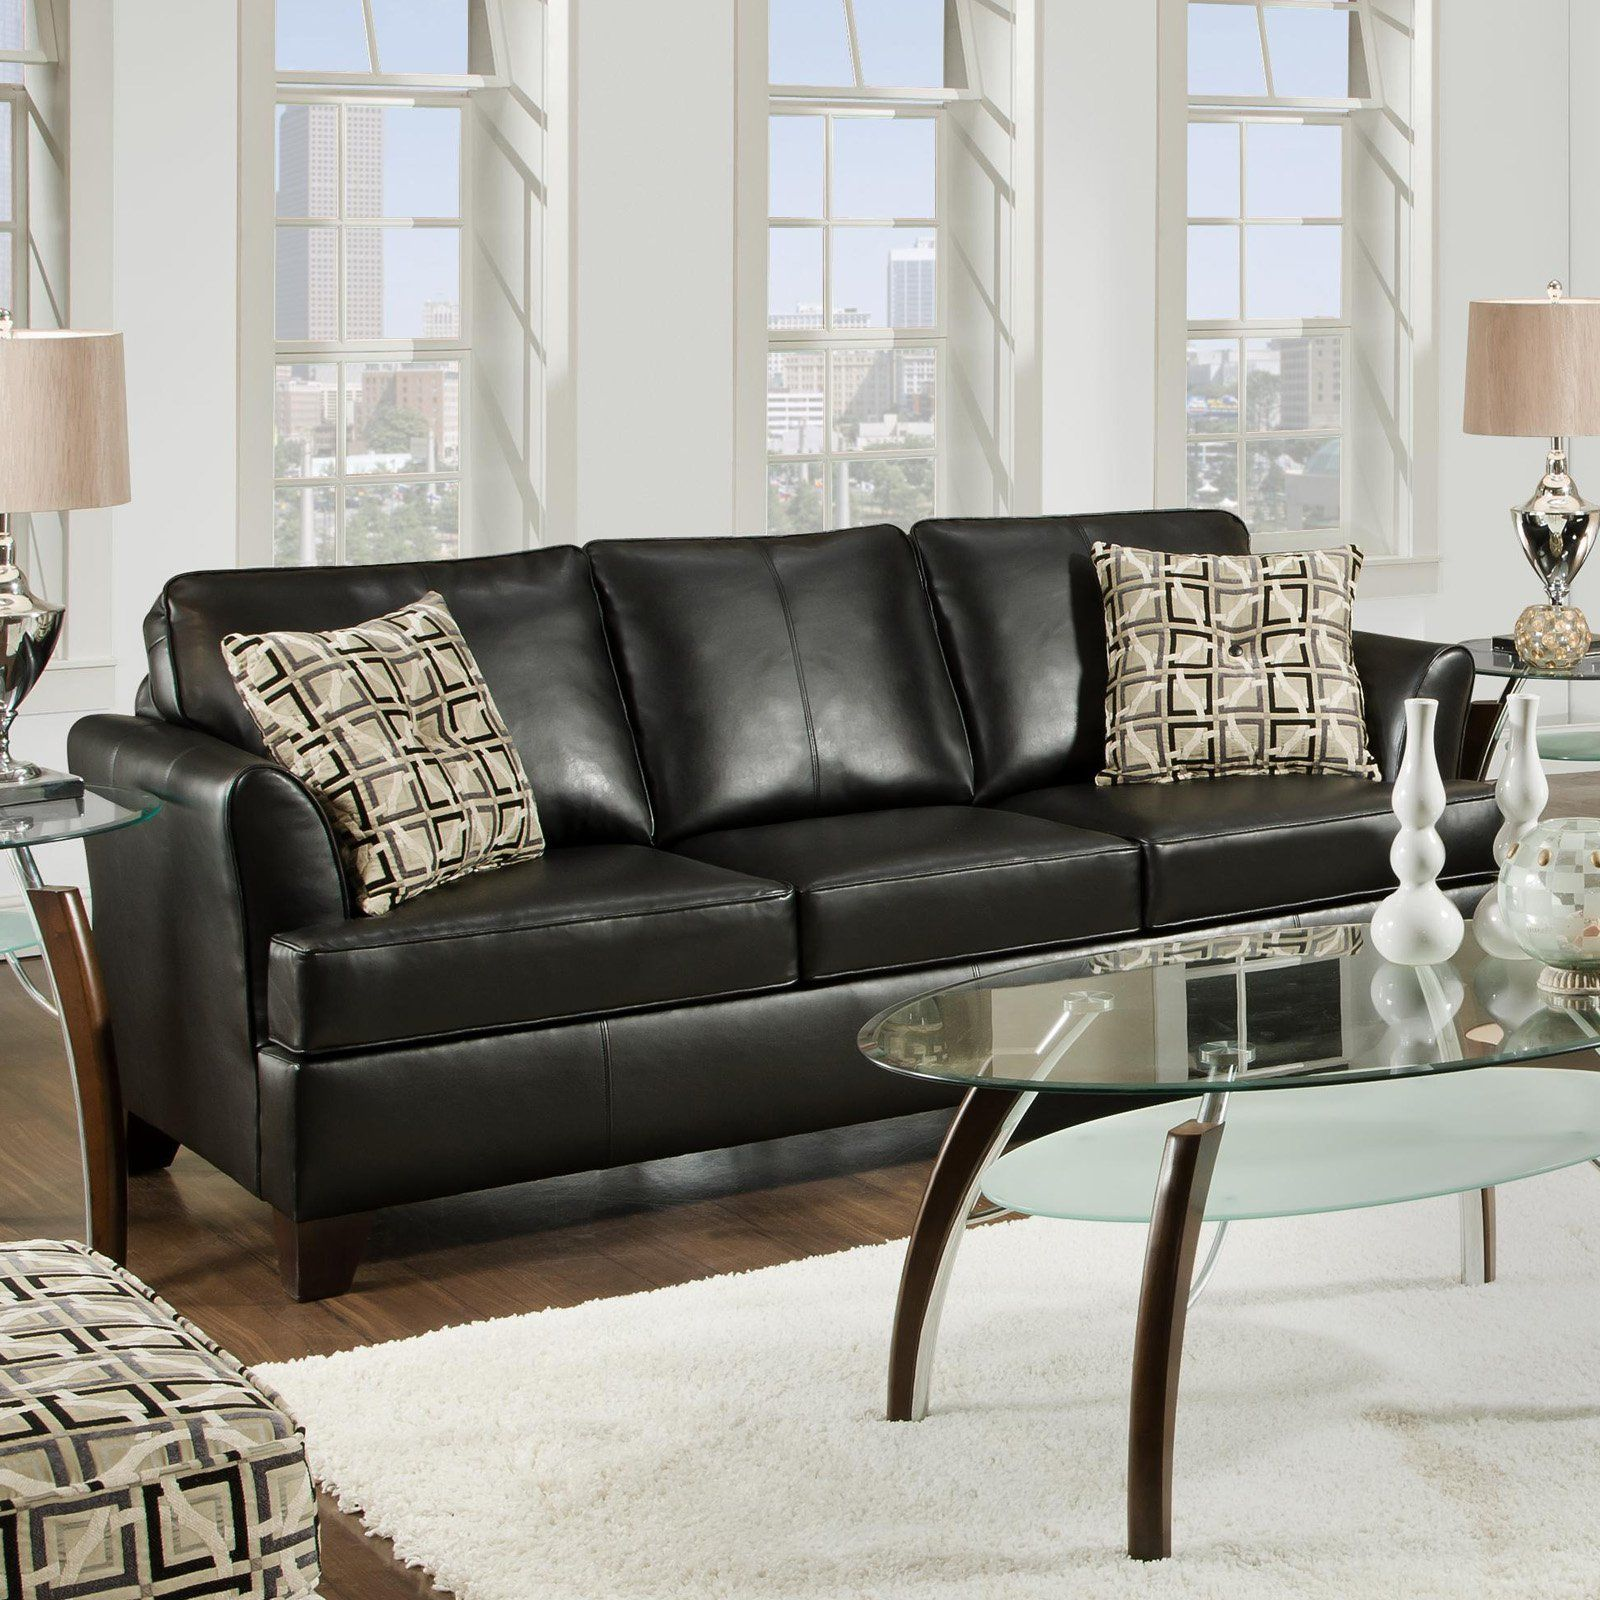 Simmons Urban Onyx Leather Sofa With Accent Pillows  Leather Mesmerizing Living Room Designs With Leather Furniture Decorating Design